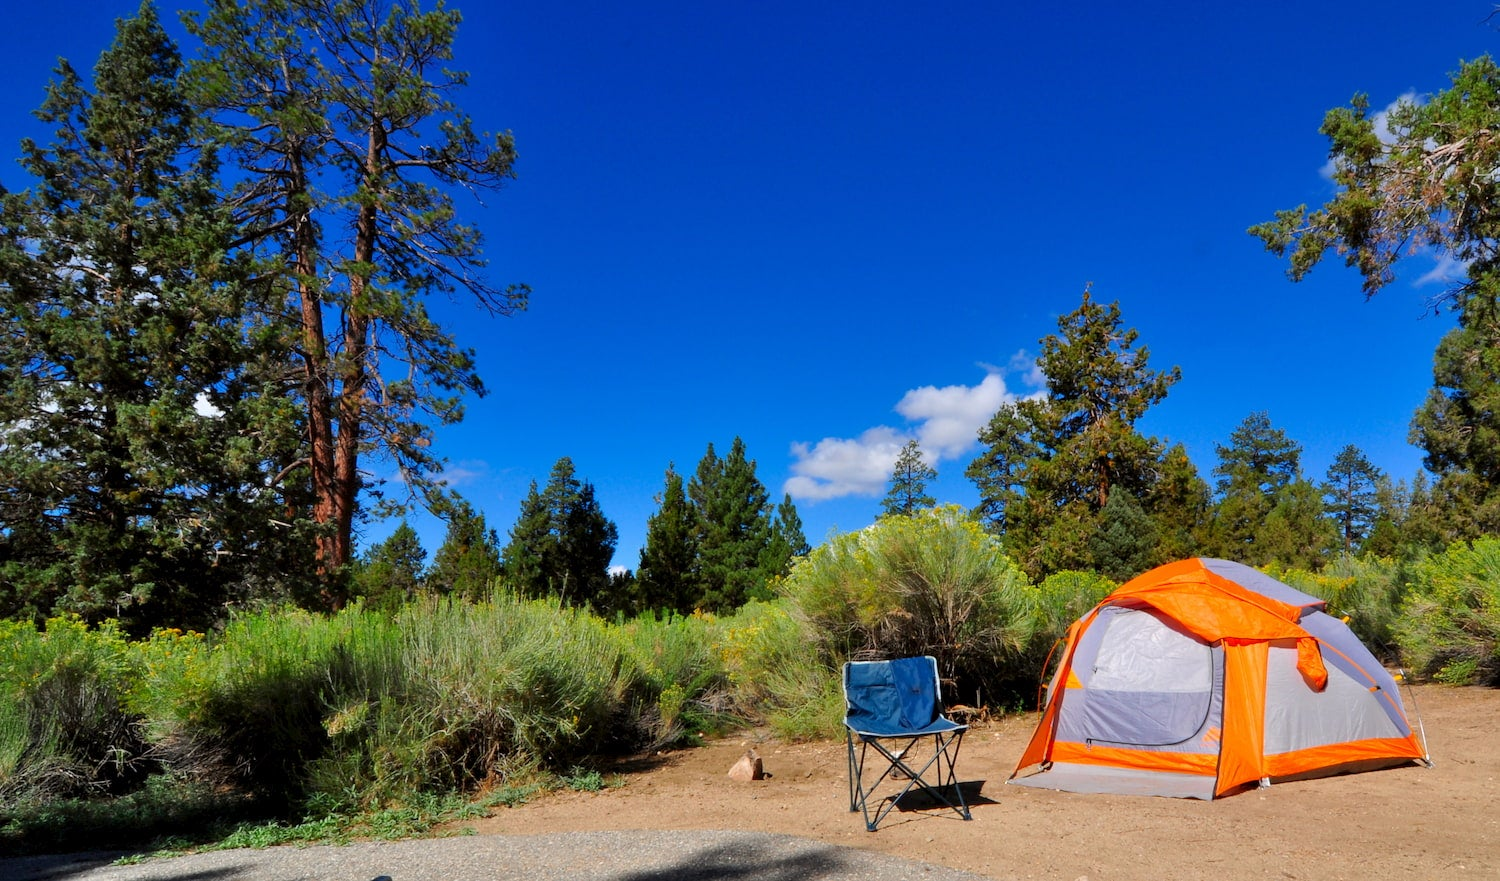 photo of camp chair and tent at campsite